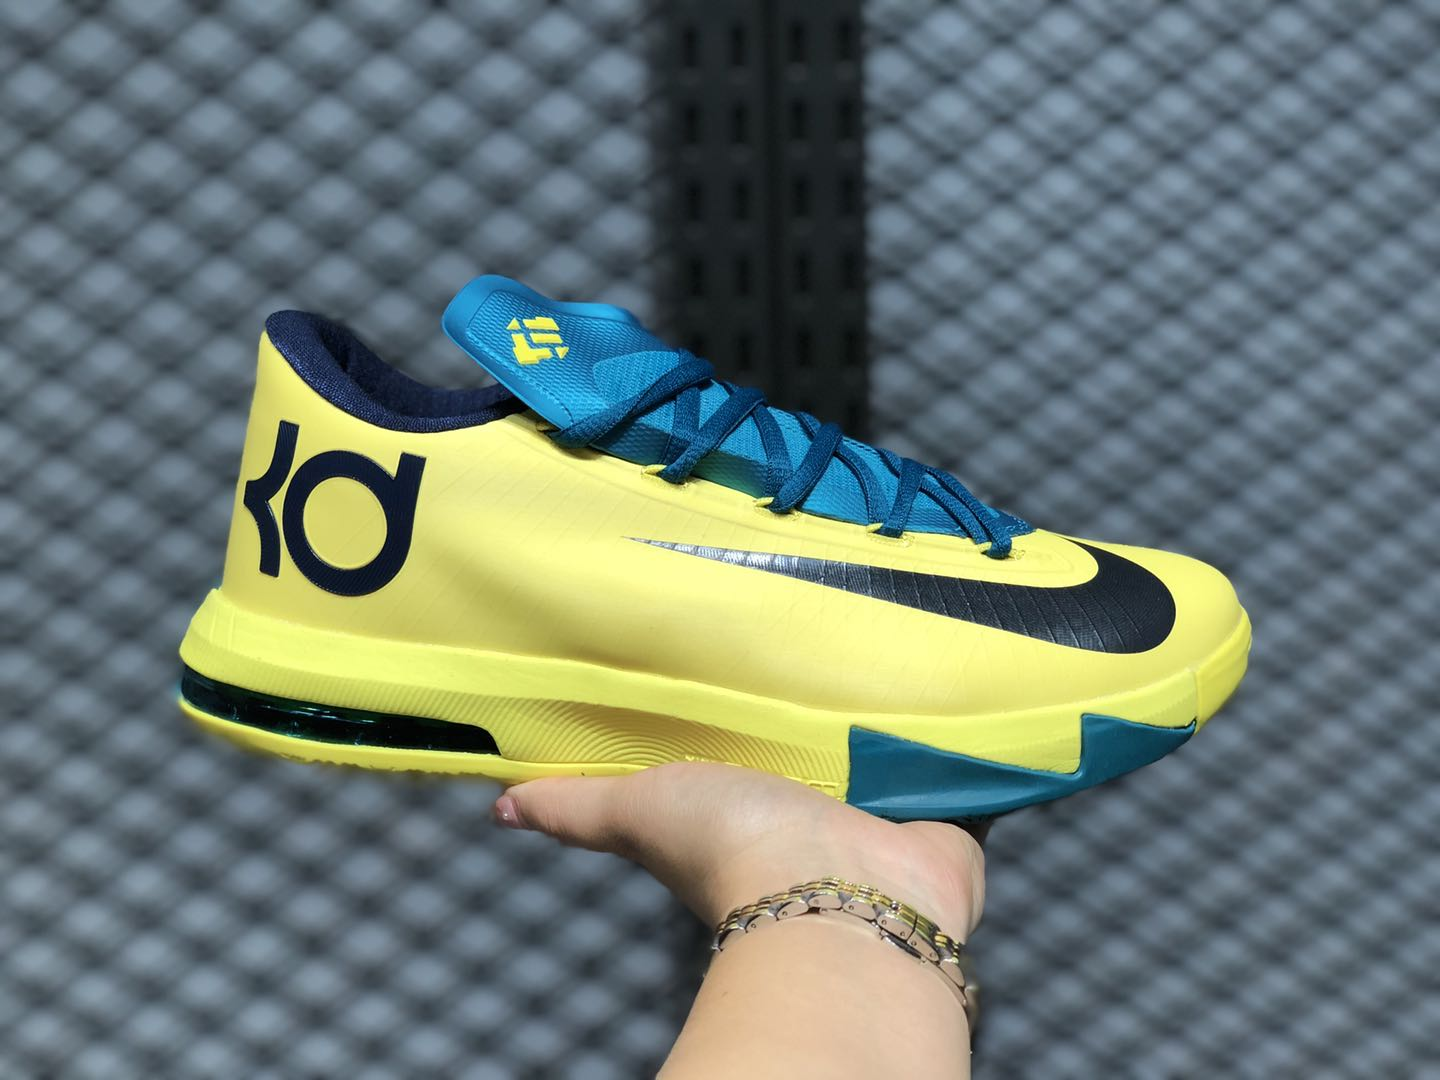 Best Sell Nike Zoom Kevin Durant 6 Seat Pleasant Shoes